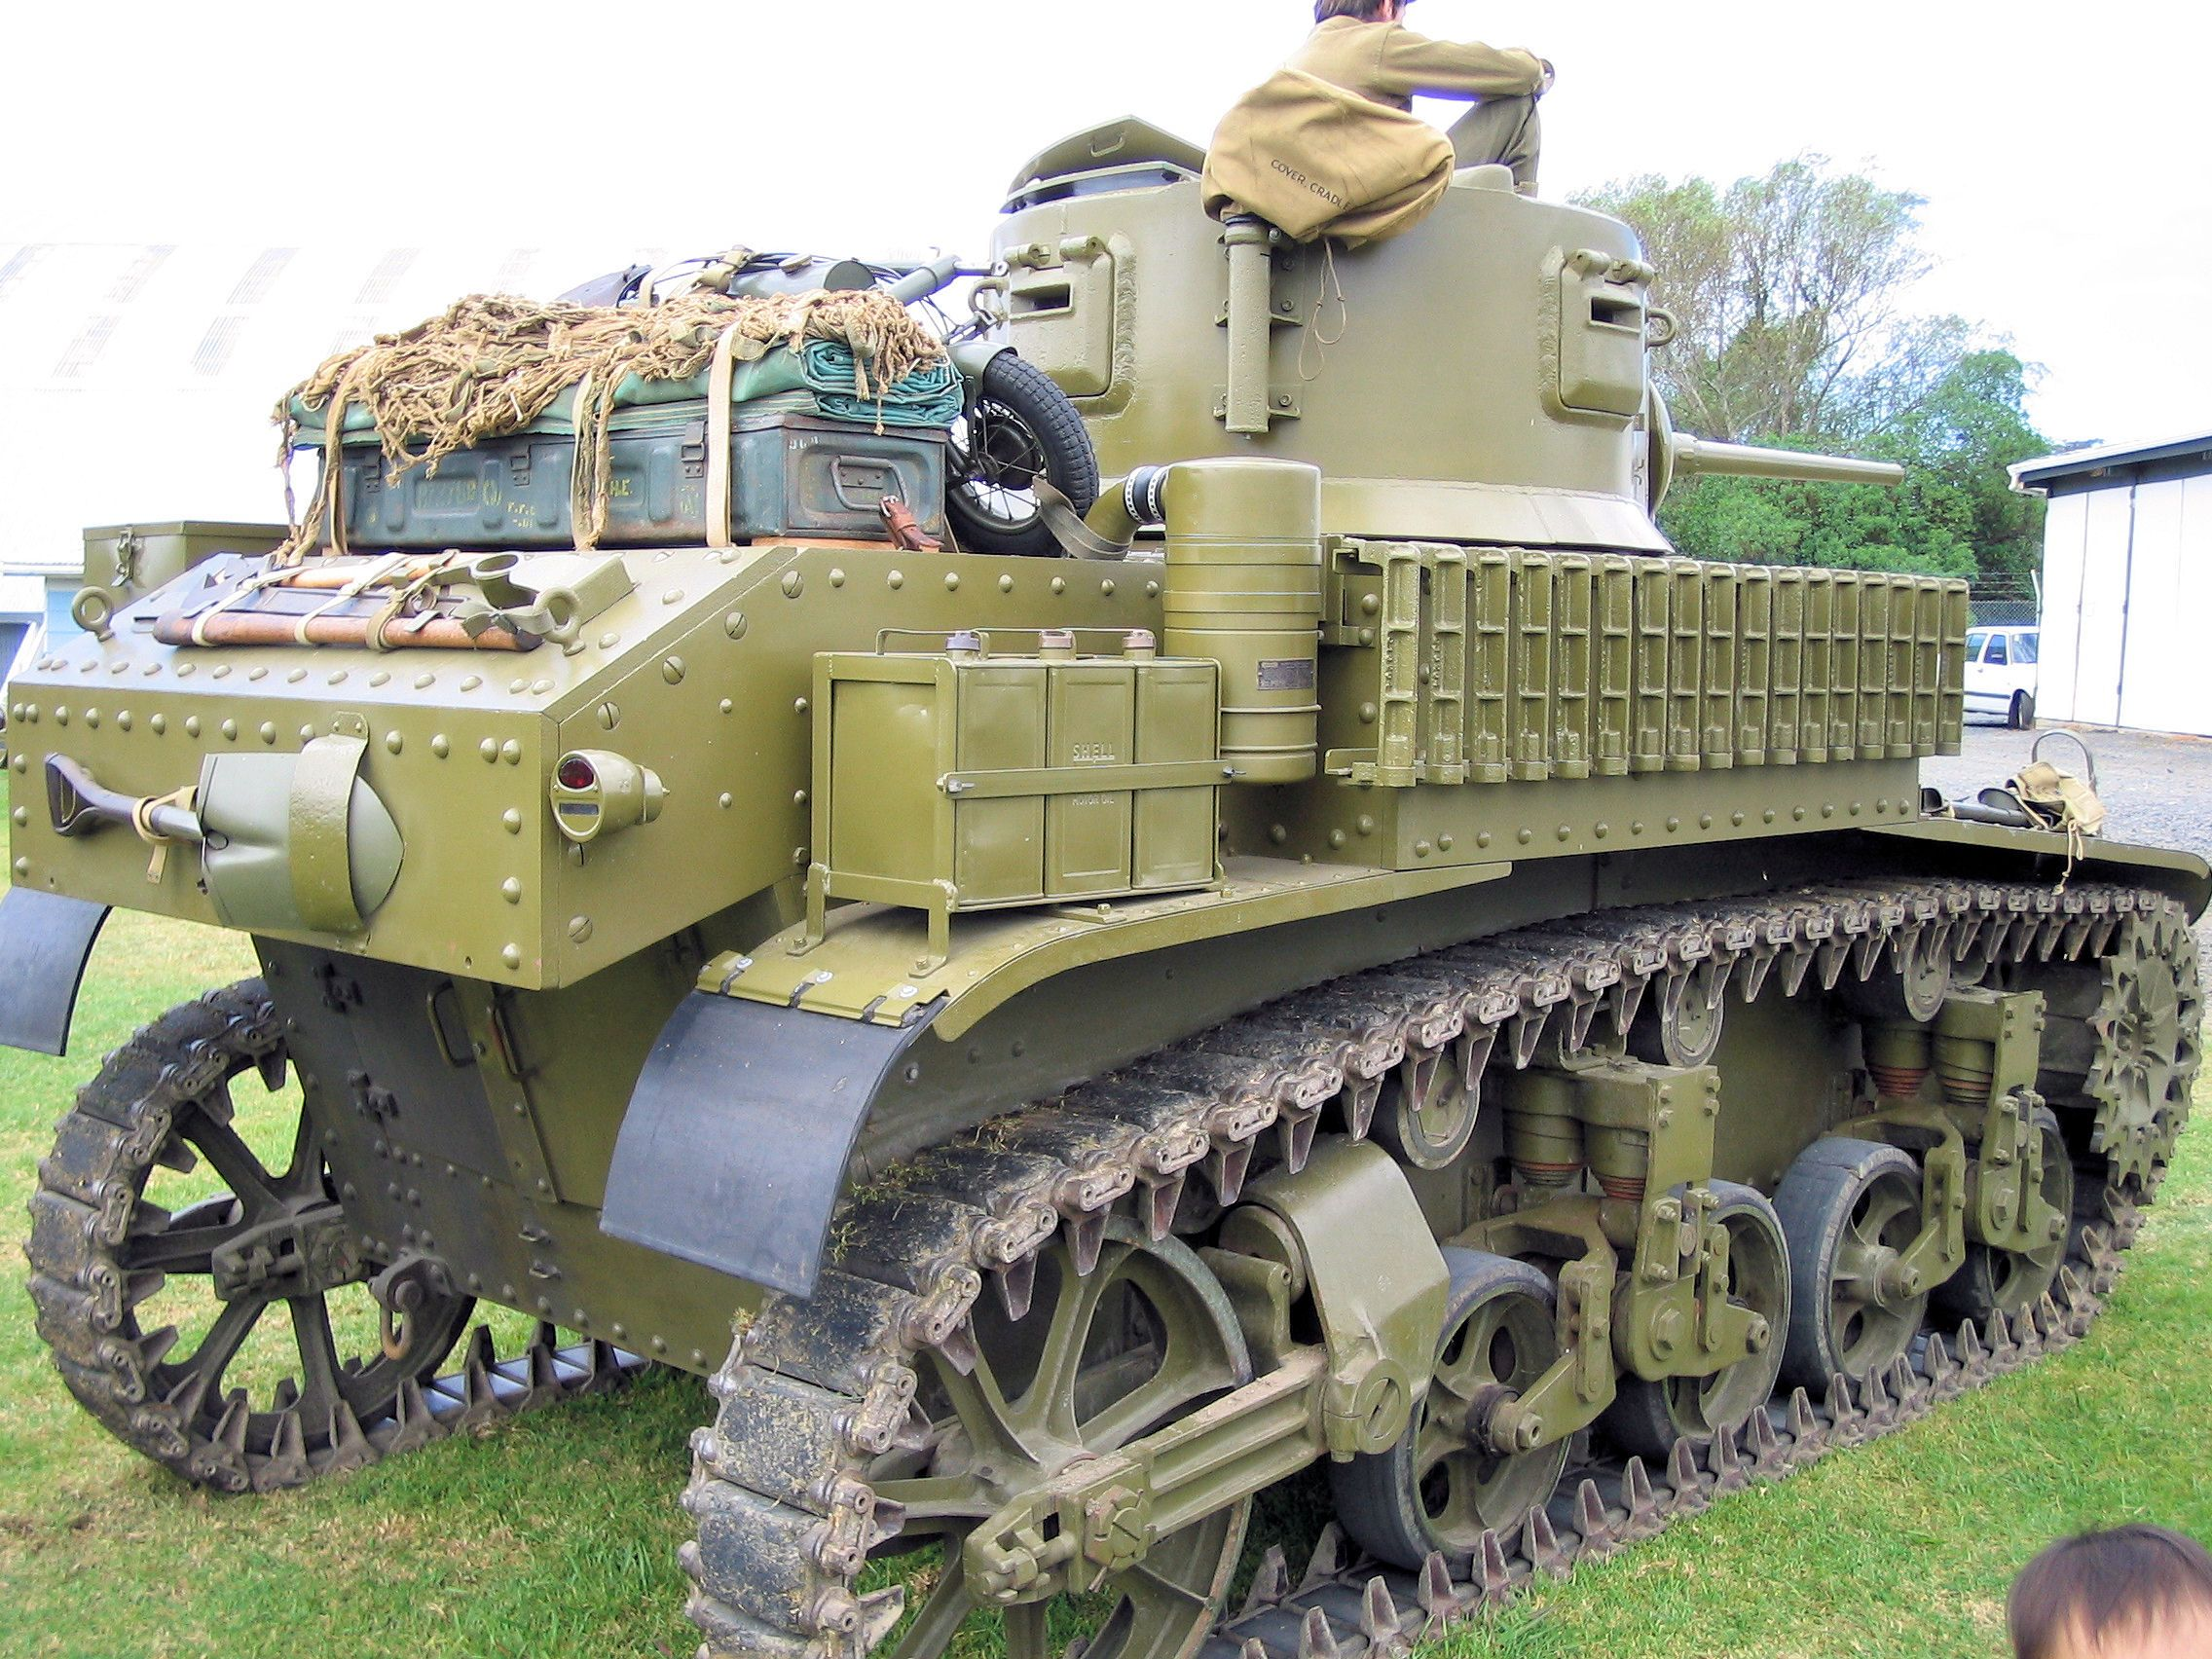 Army Tanks For Sale >> Tanks For Sale M3 Stuart Tank For Sale Afabo Mygyk Party M3